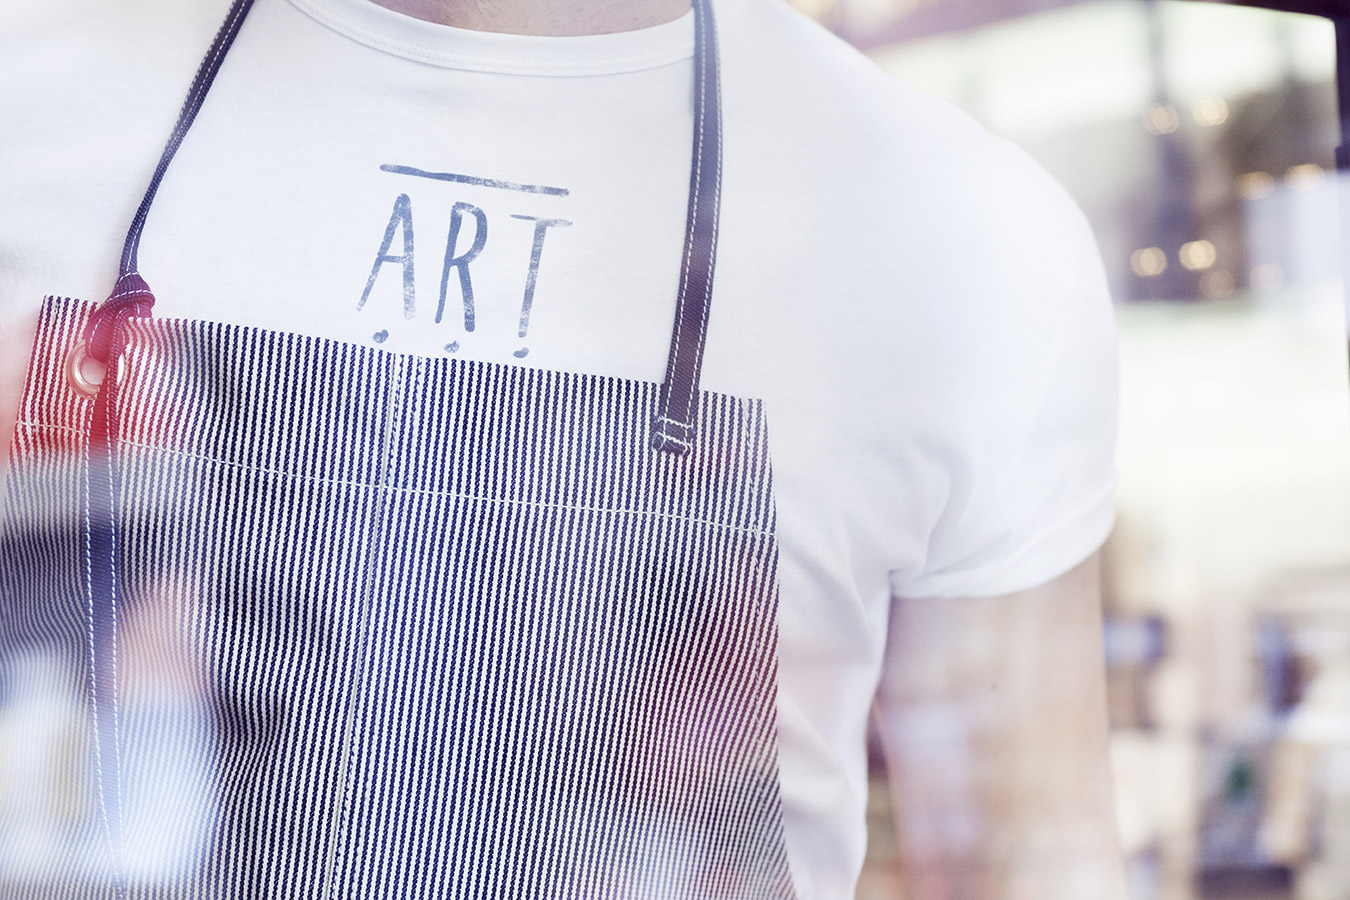 Art Clothing